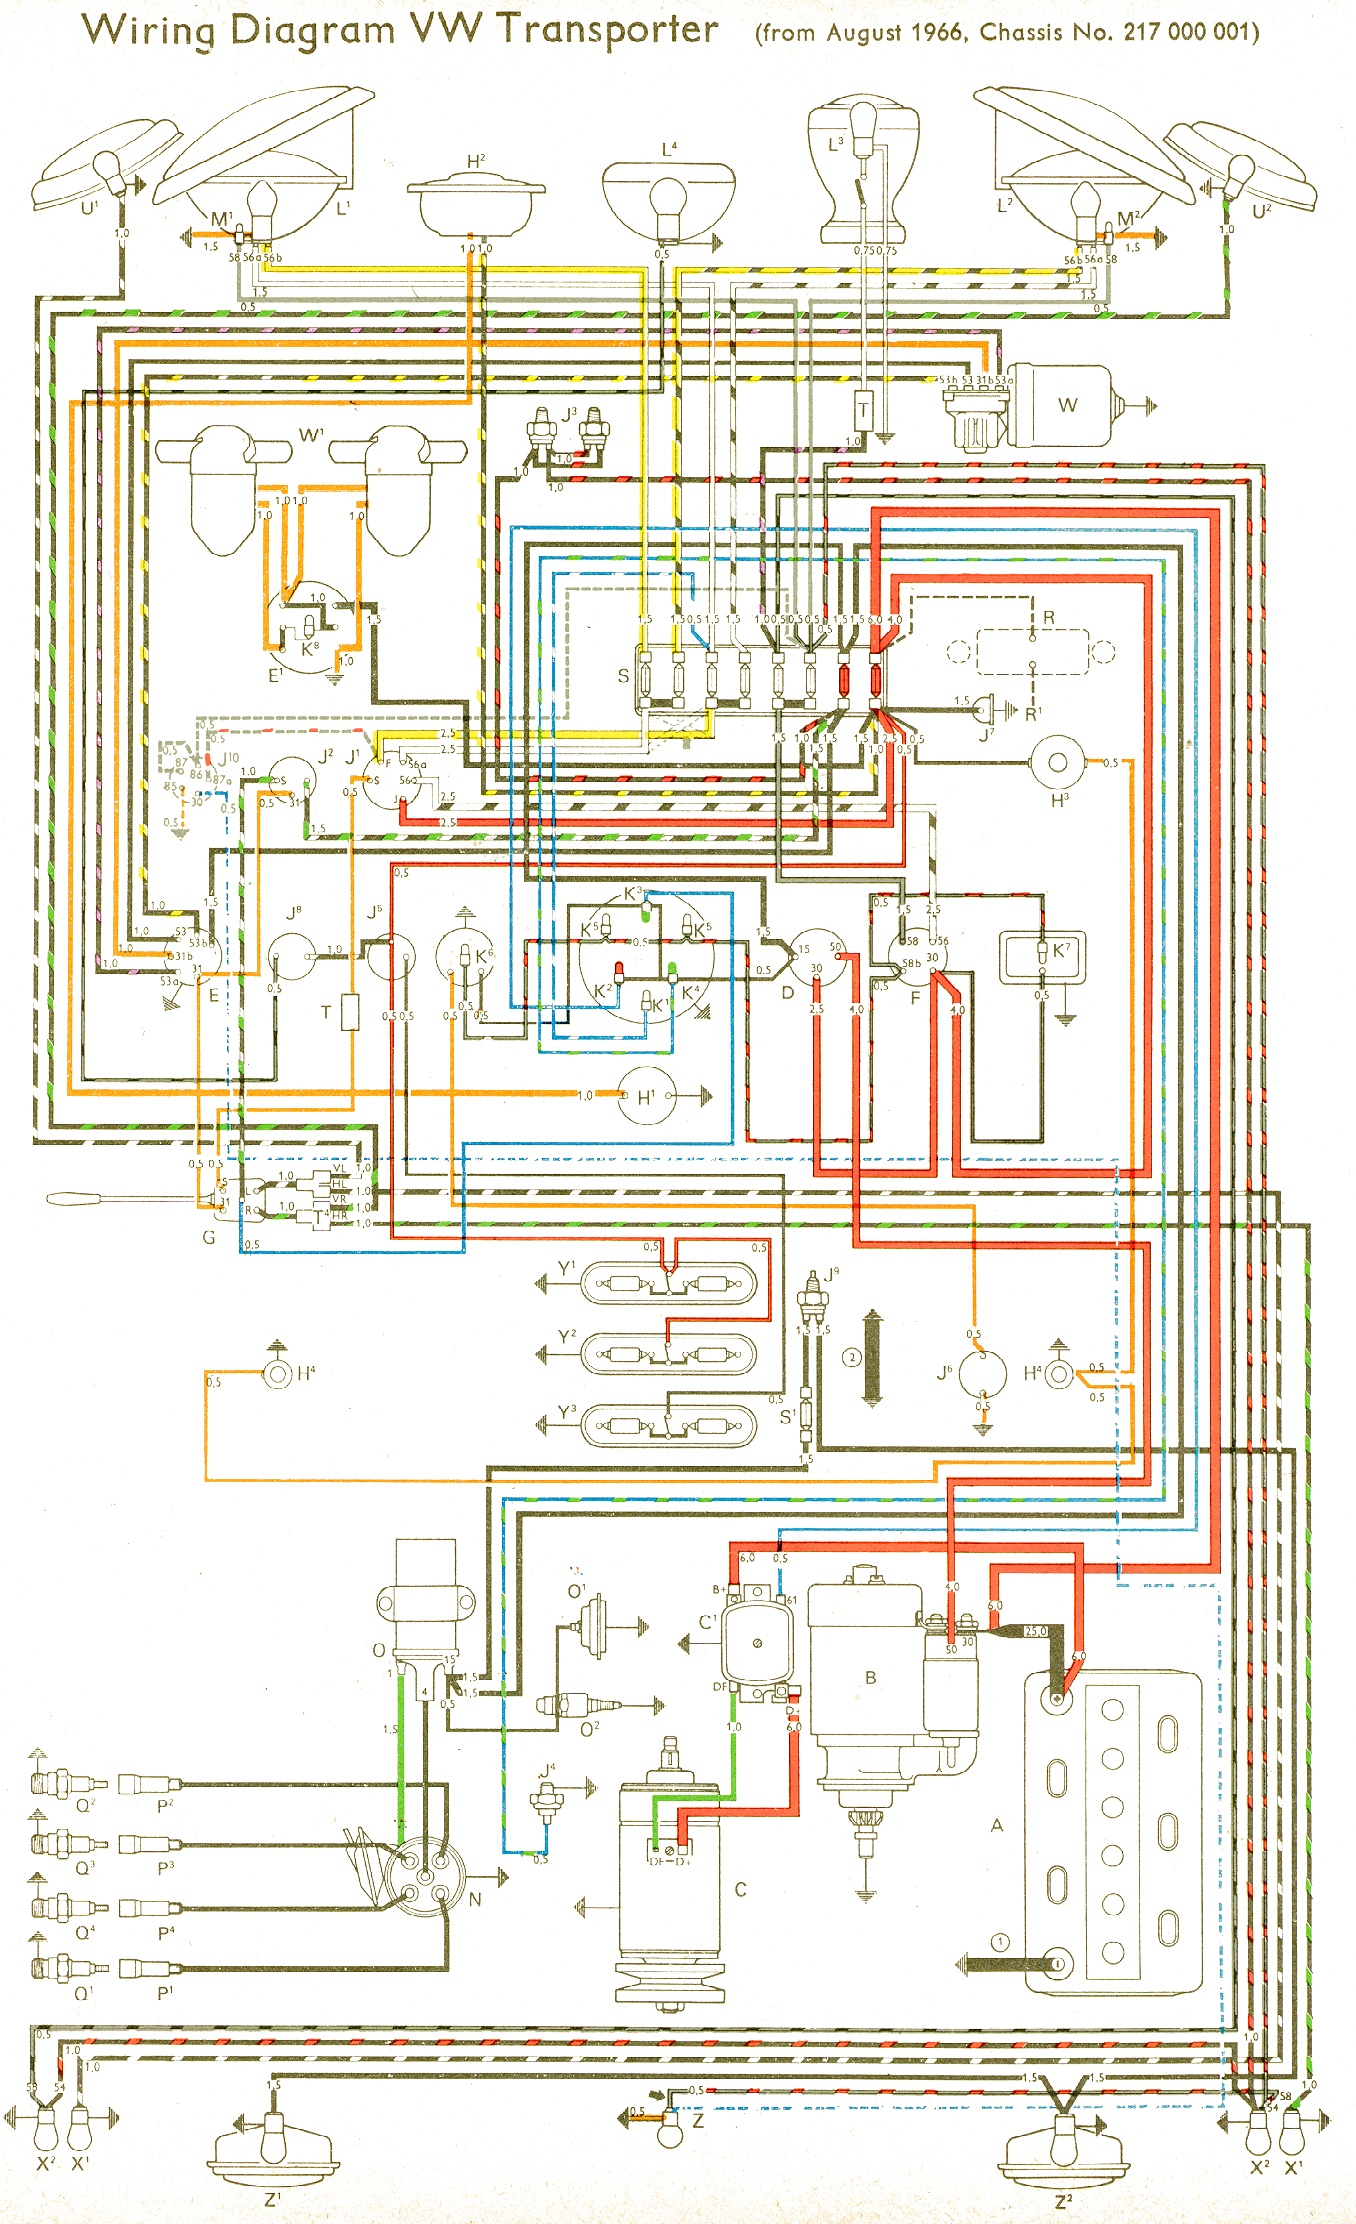 1974 VW Thing Wiring Diagram http://volkspower.nl/tech/wiring/index.html